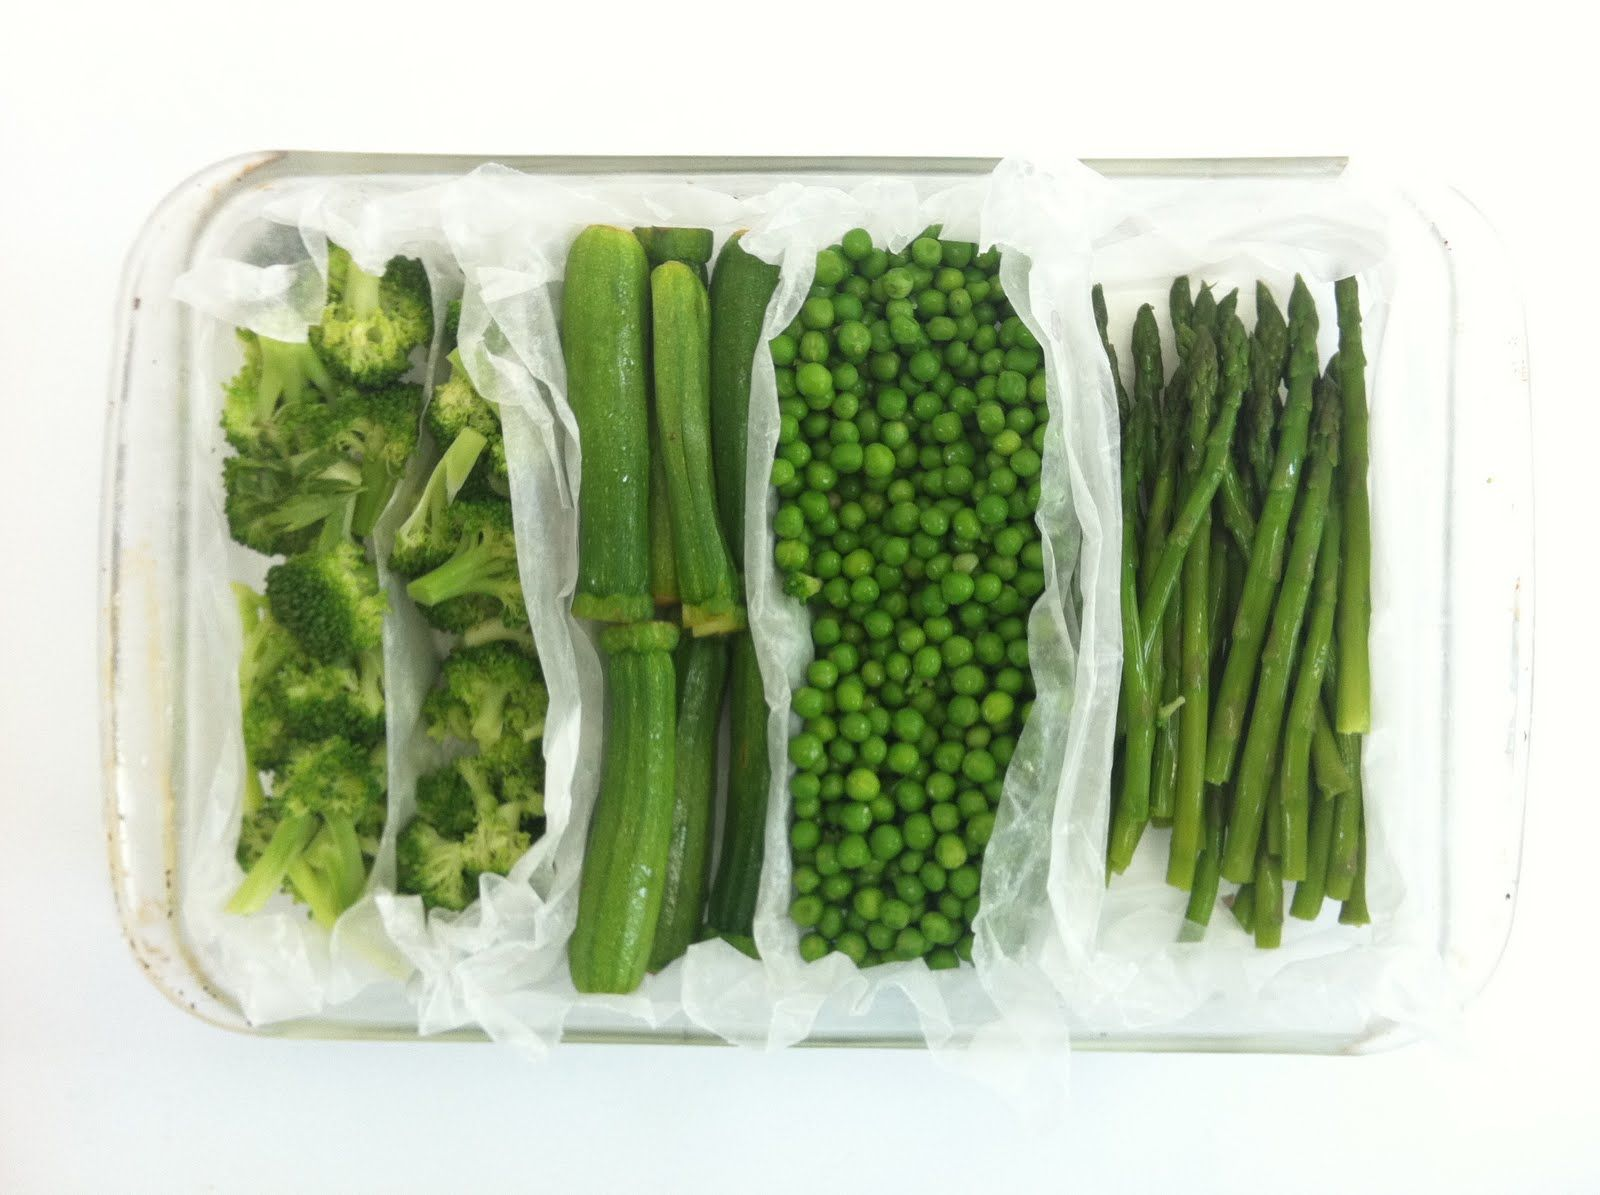 Green Vegetables.